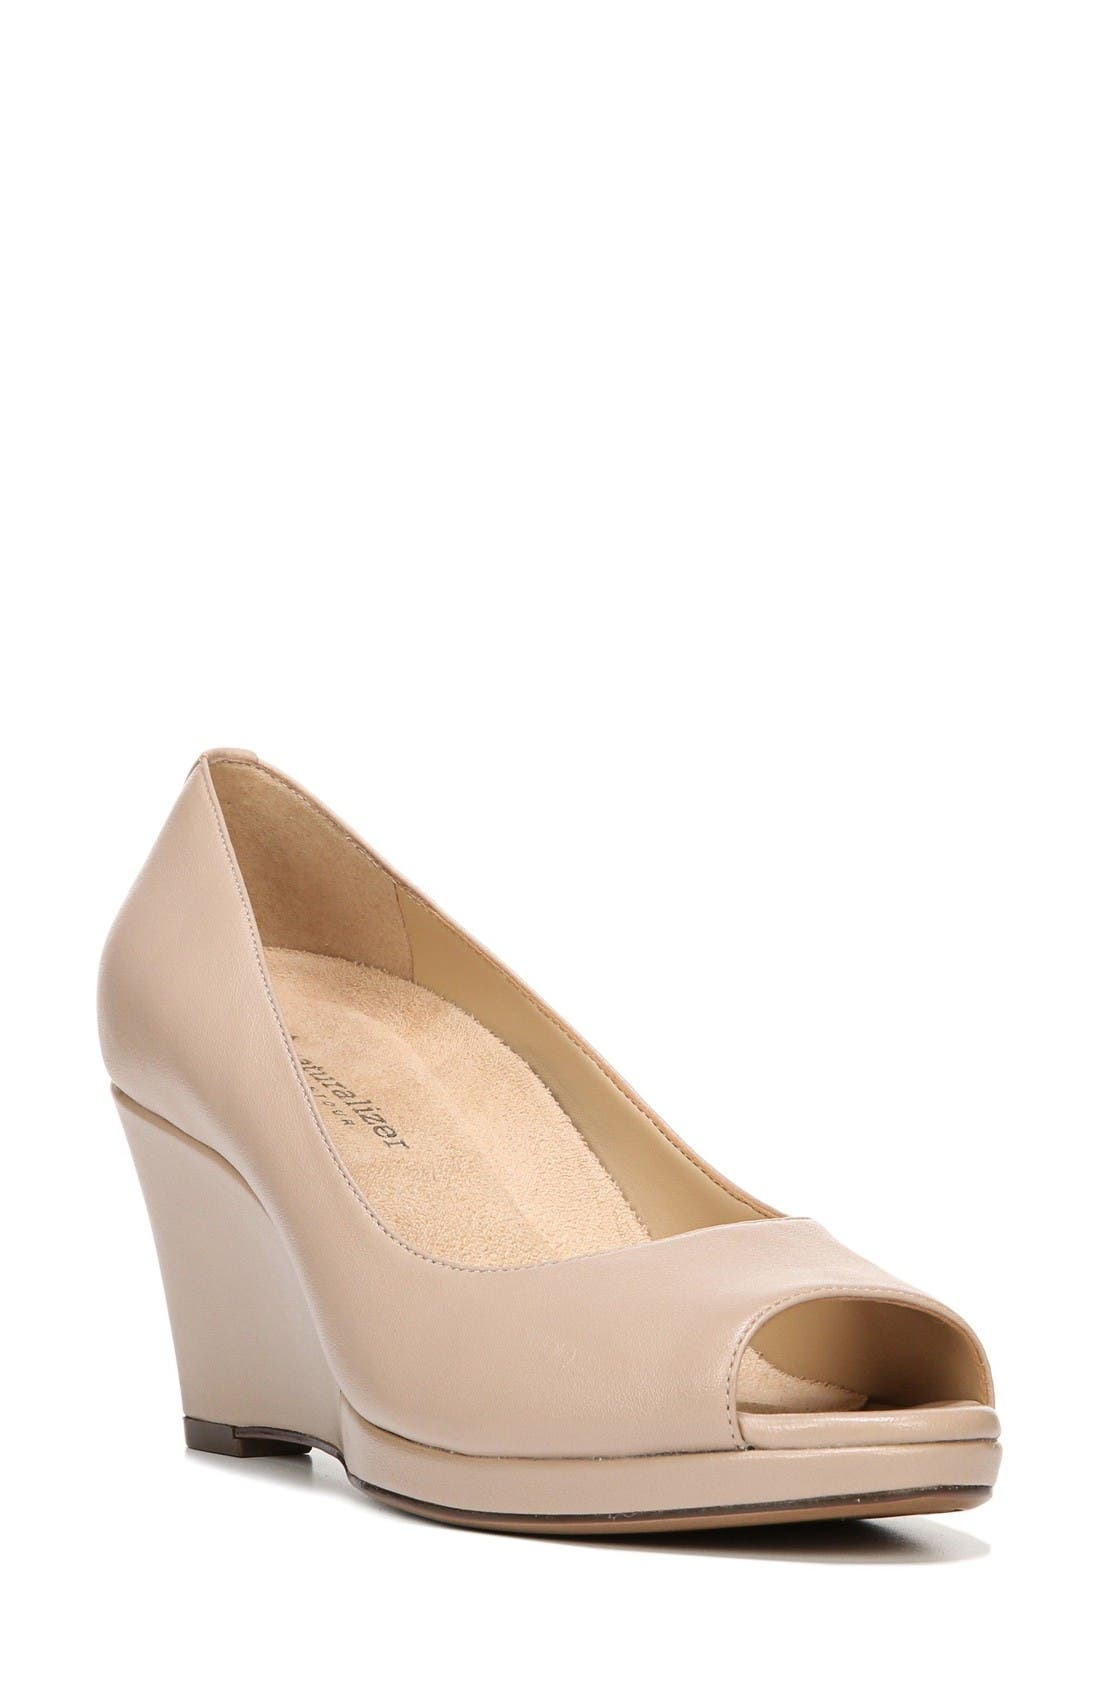 Naturalizer Olivia Peep Toe Wedge (Women)